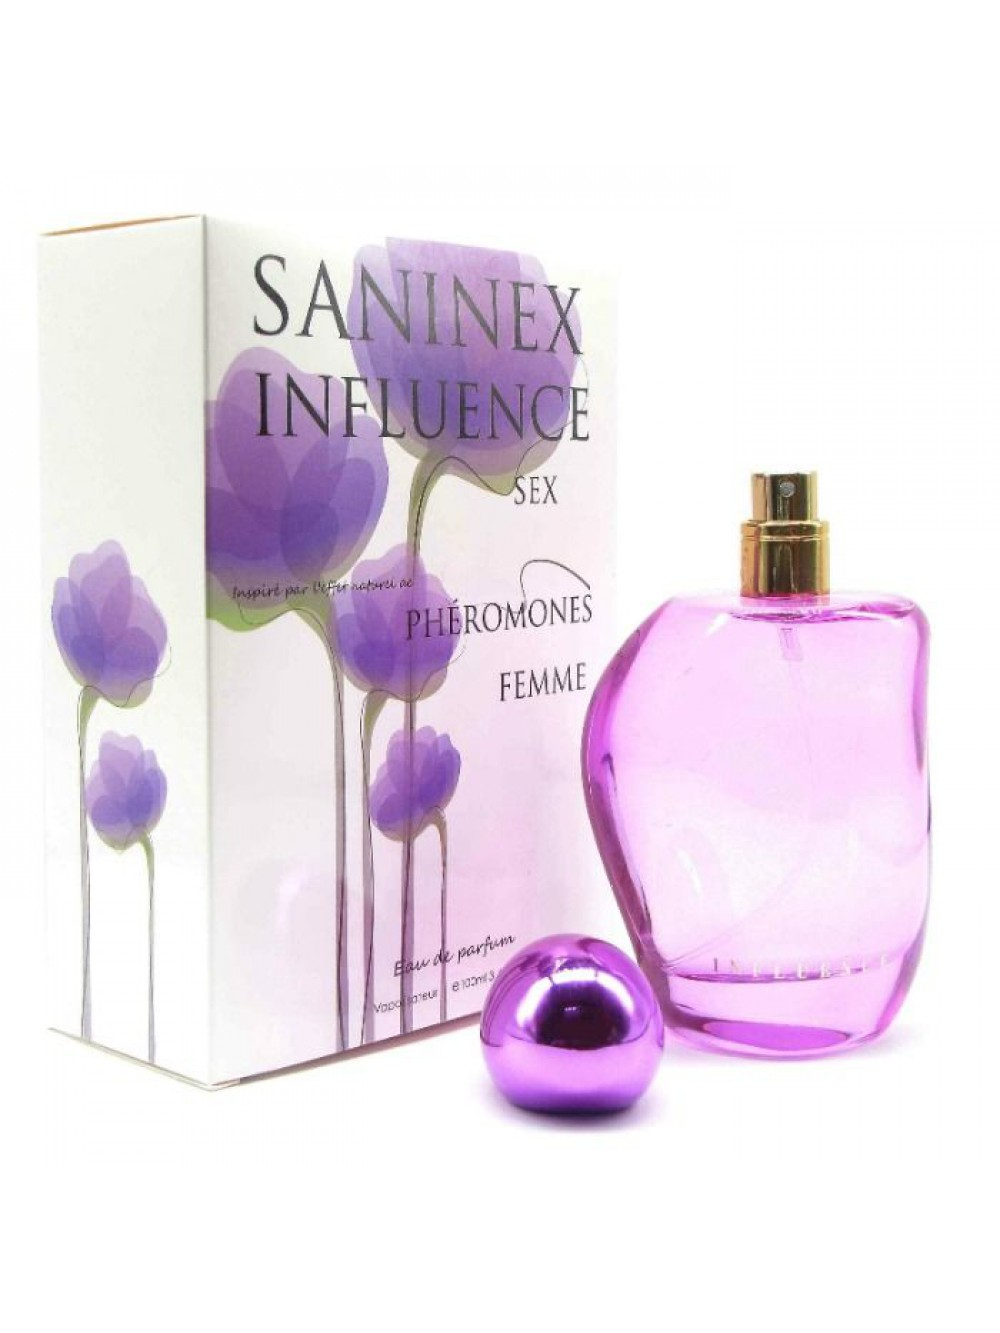 PERFUME WOMAN PHEROMONES SANINEX INFLUENCE SEX. 8984686901955